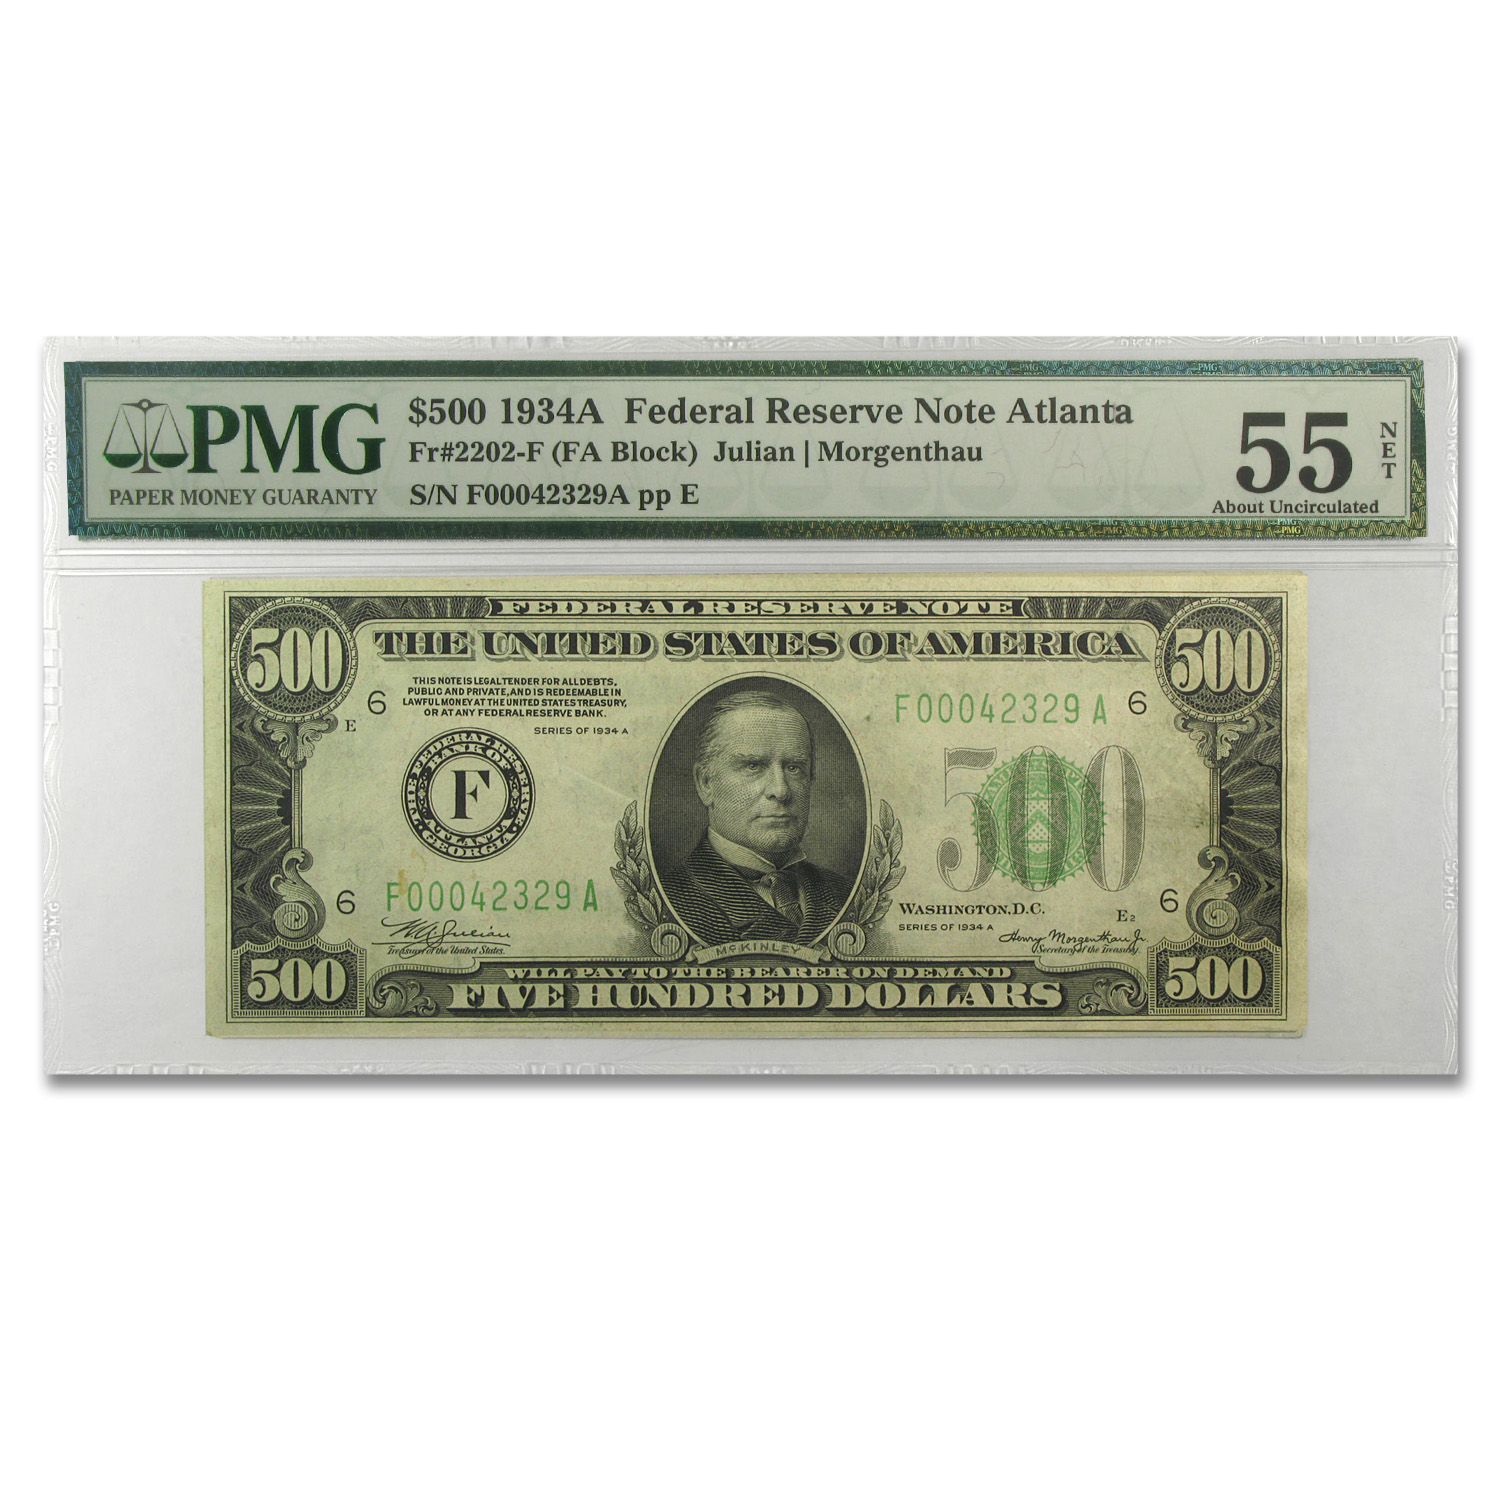 1934-A (F-Atlanta) $500 FRN (About Unc 55 Net-PMG)